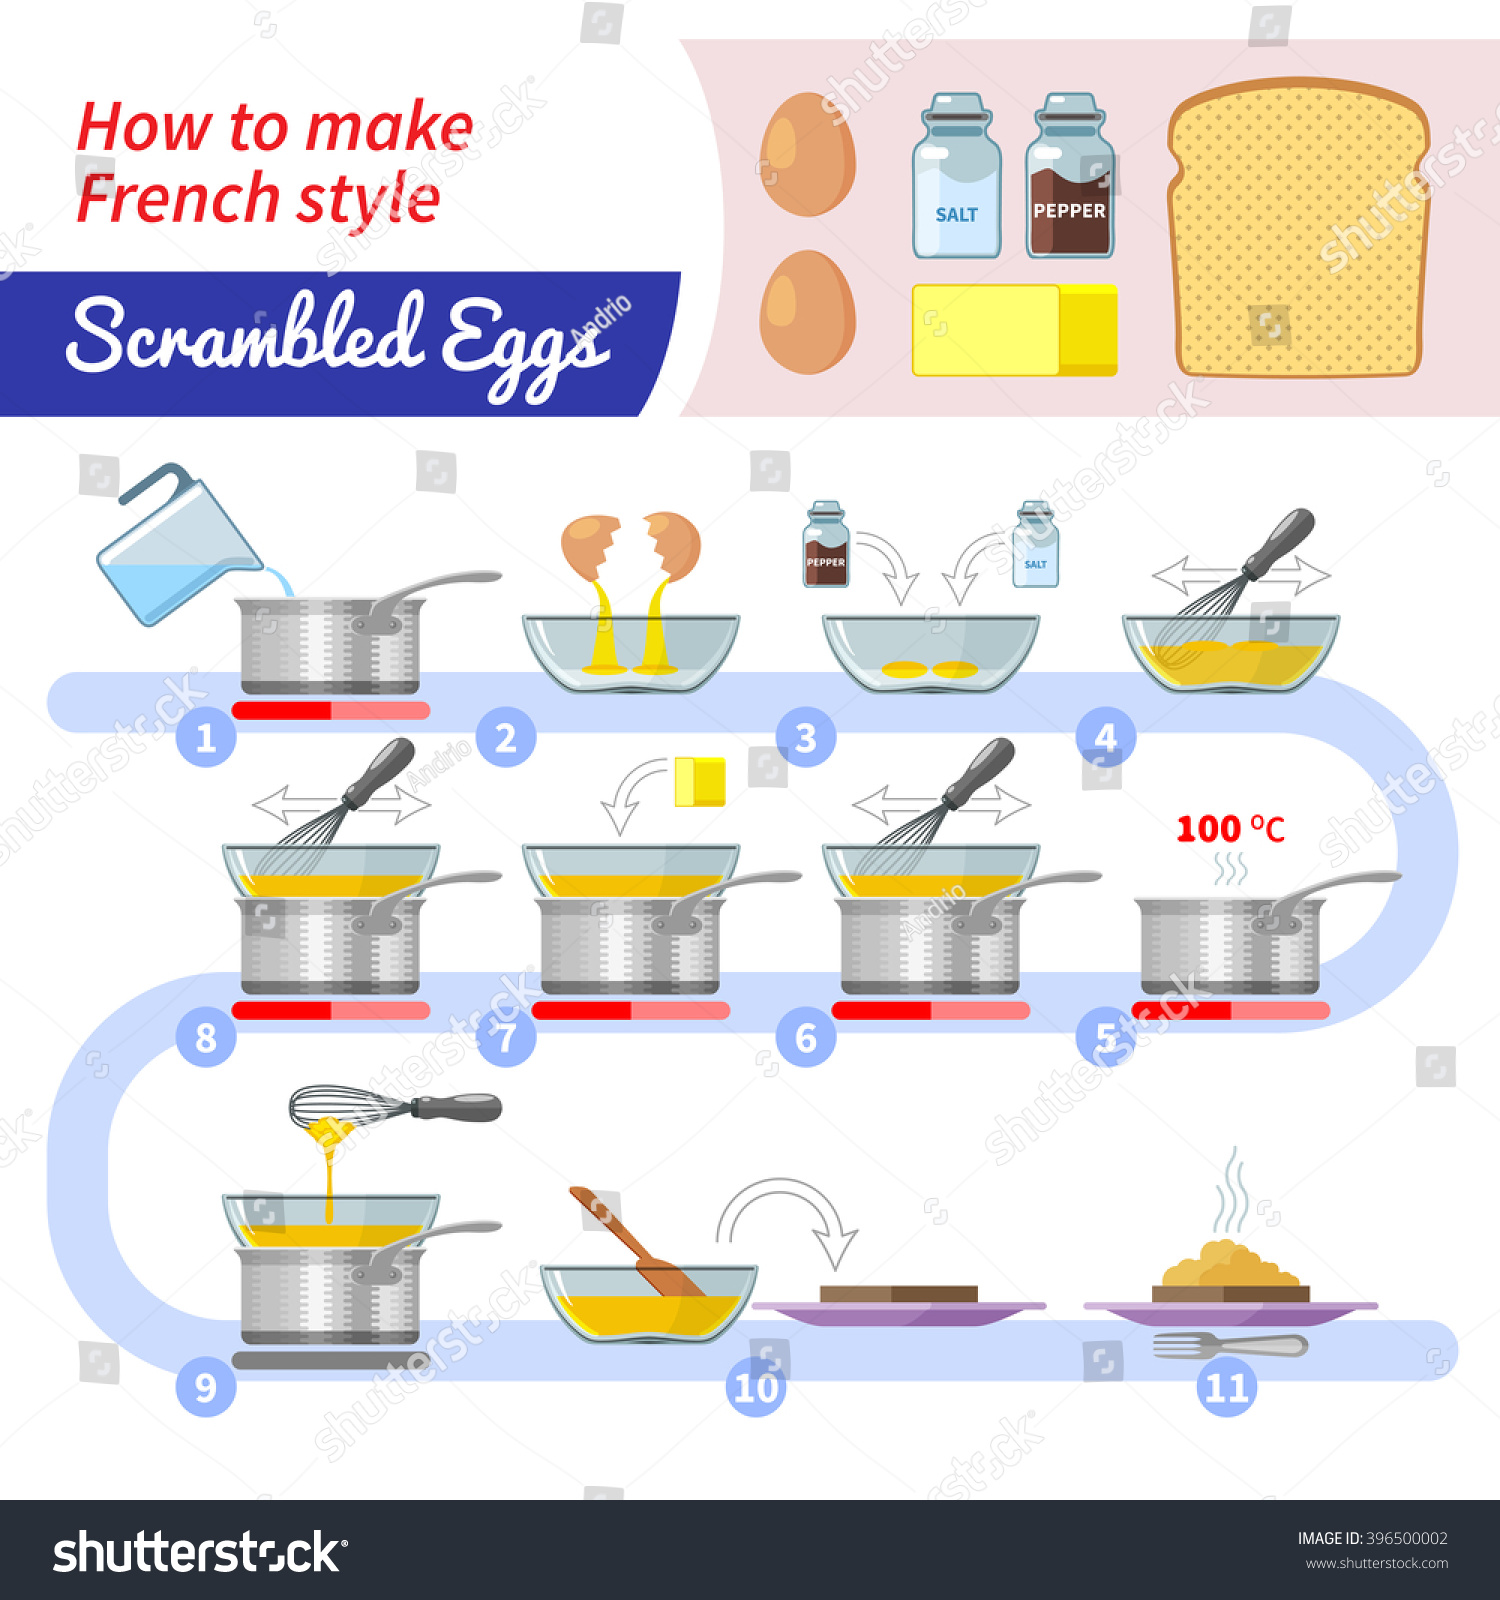 Cooking infographics step by step recipe stock vector for French style scrambled eggs